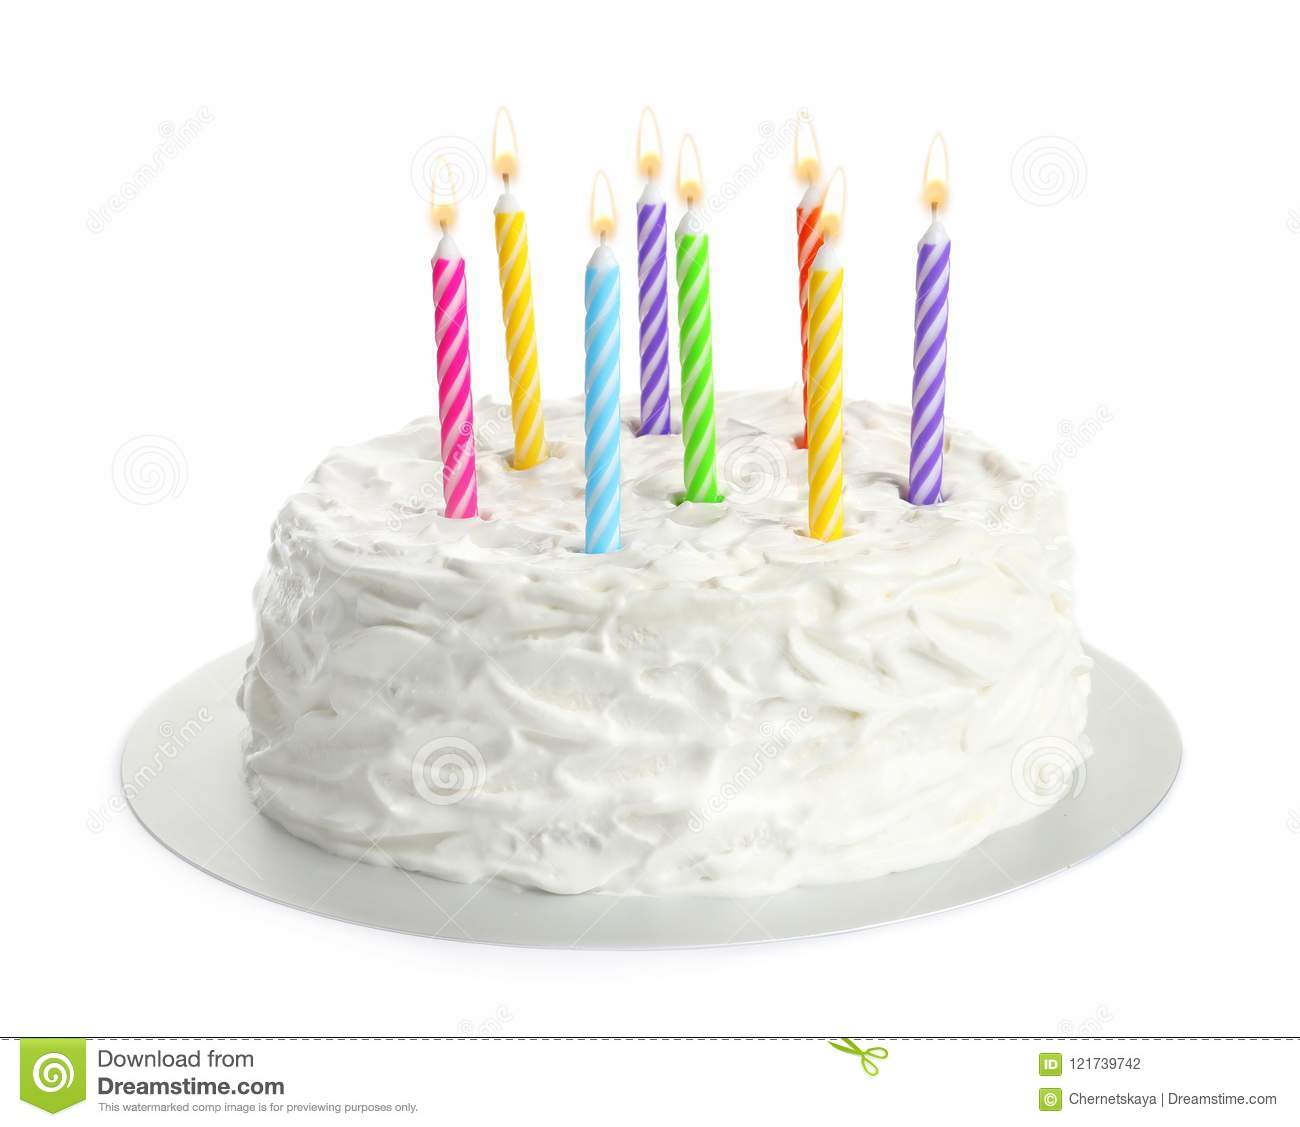 19 372 Birthday Cake Candles Photos Free Royalty Free Stock Photos From Dreamstime